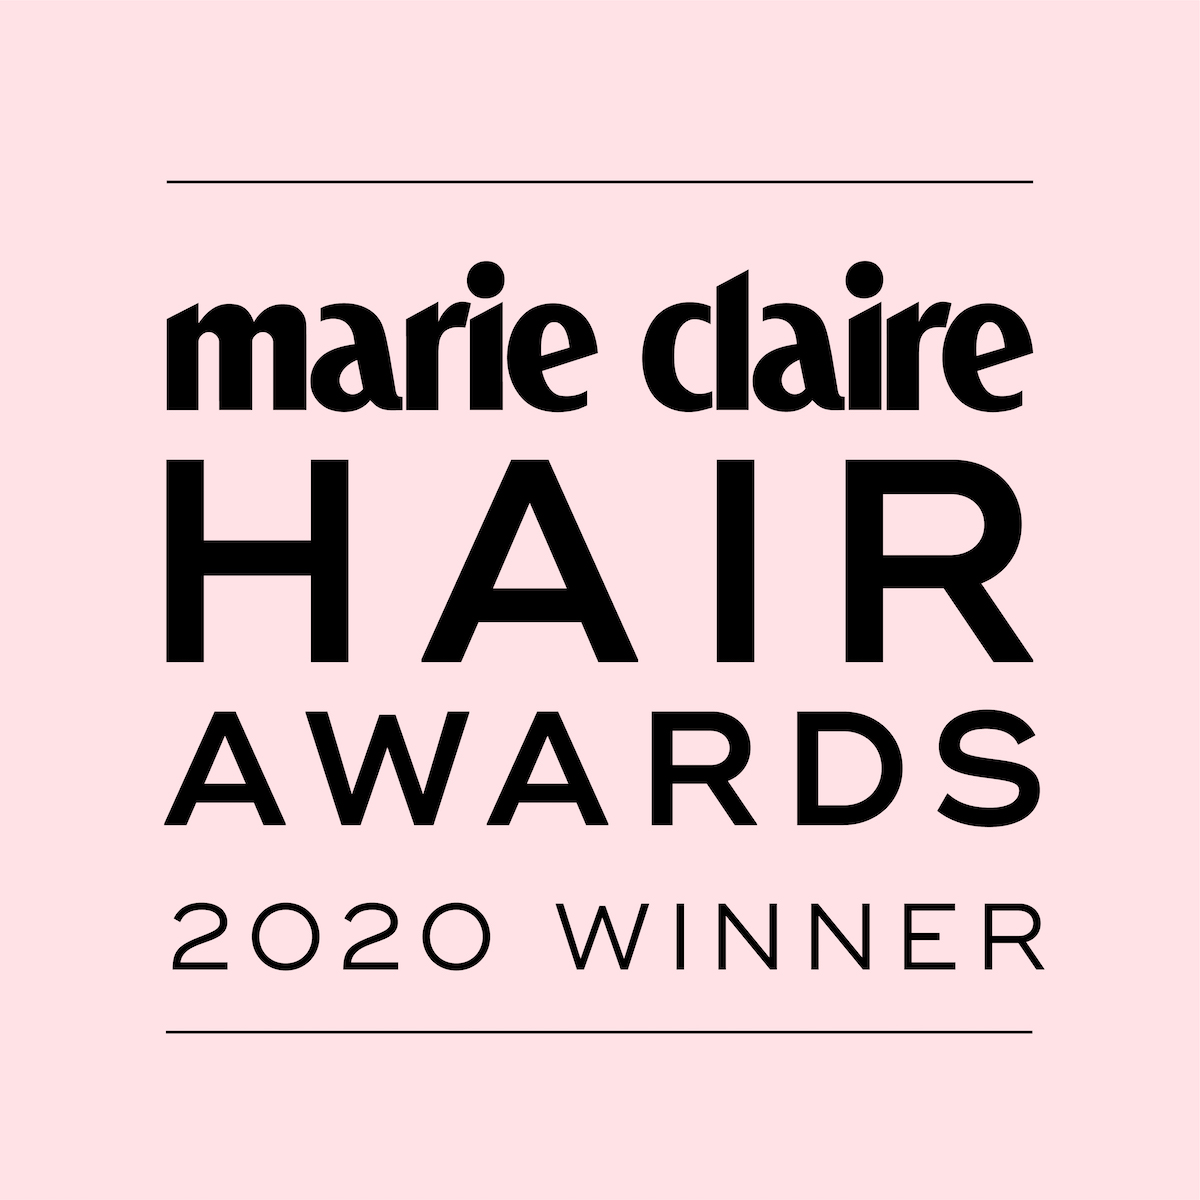 Marie Claire awards 2020